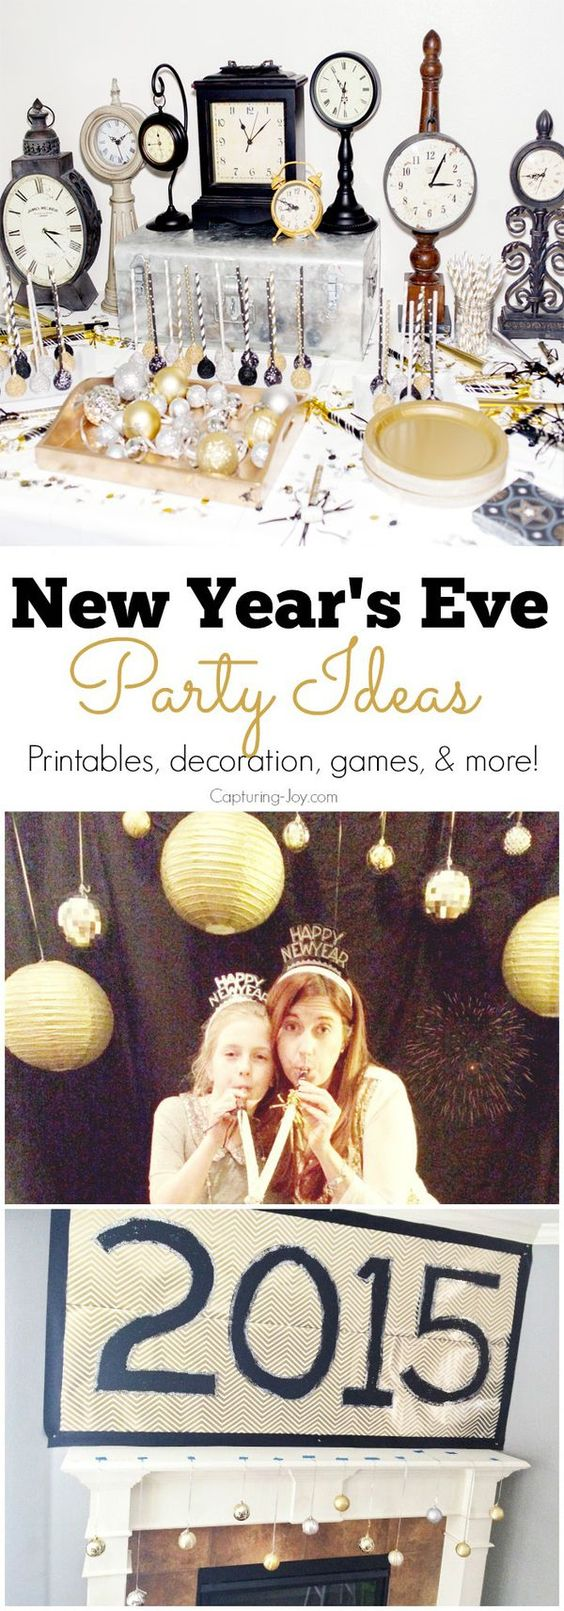 See 10 Ideas For Last Minute New Year's Eve Decoration